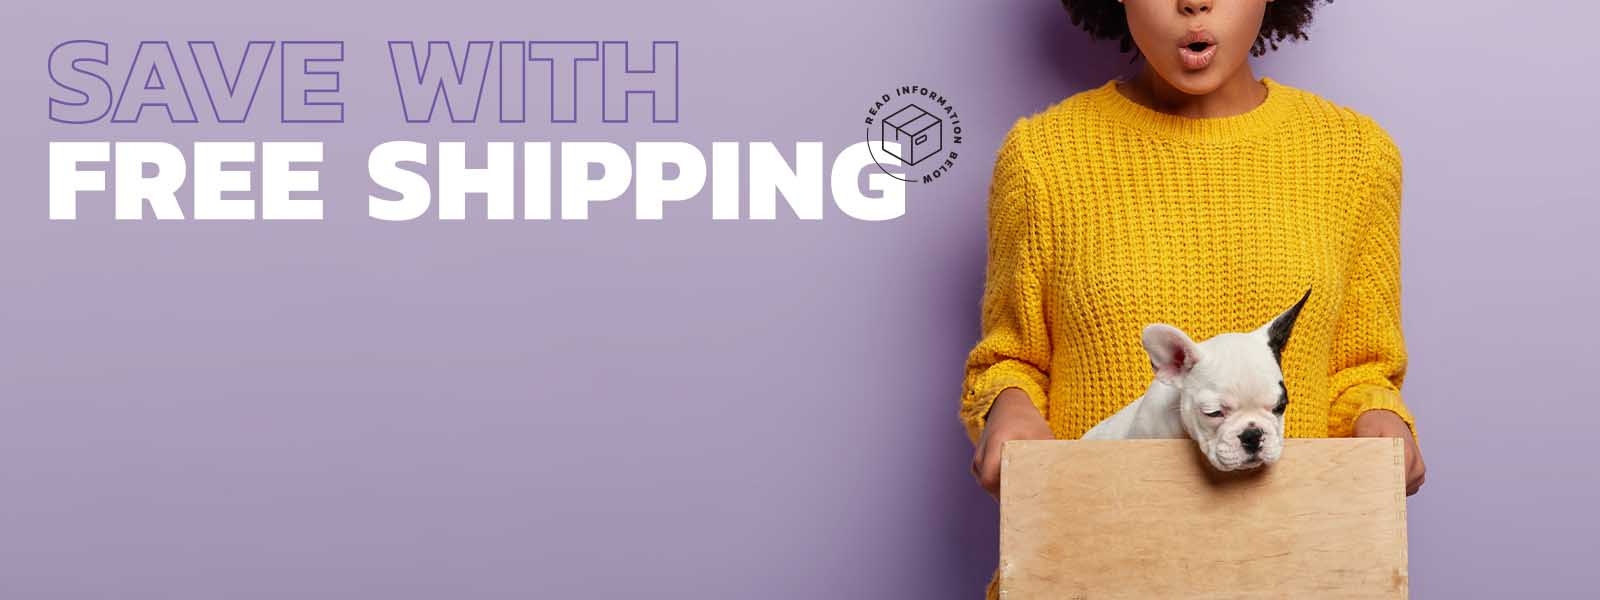 Save with Free Shipping